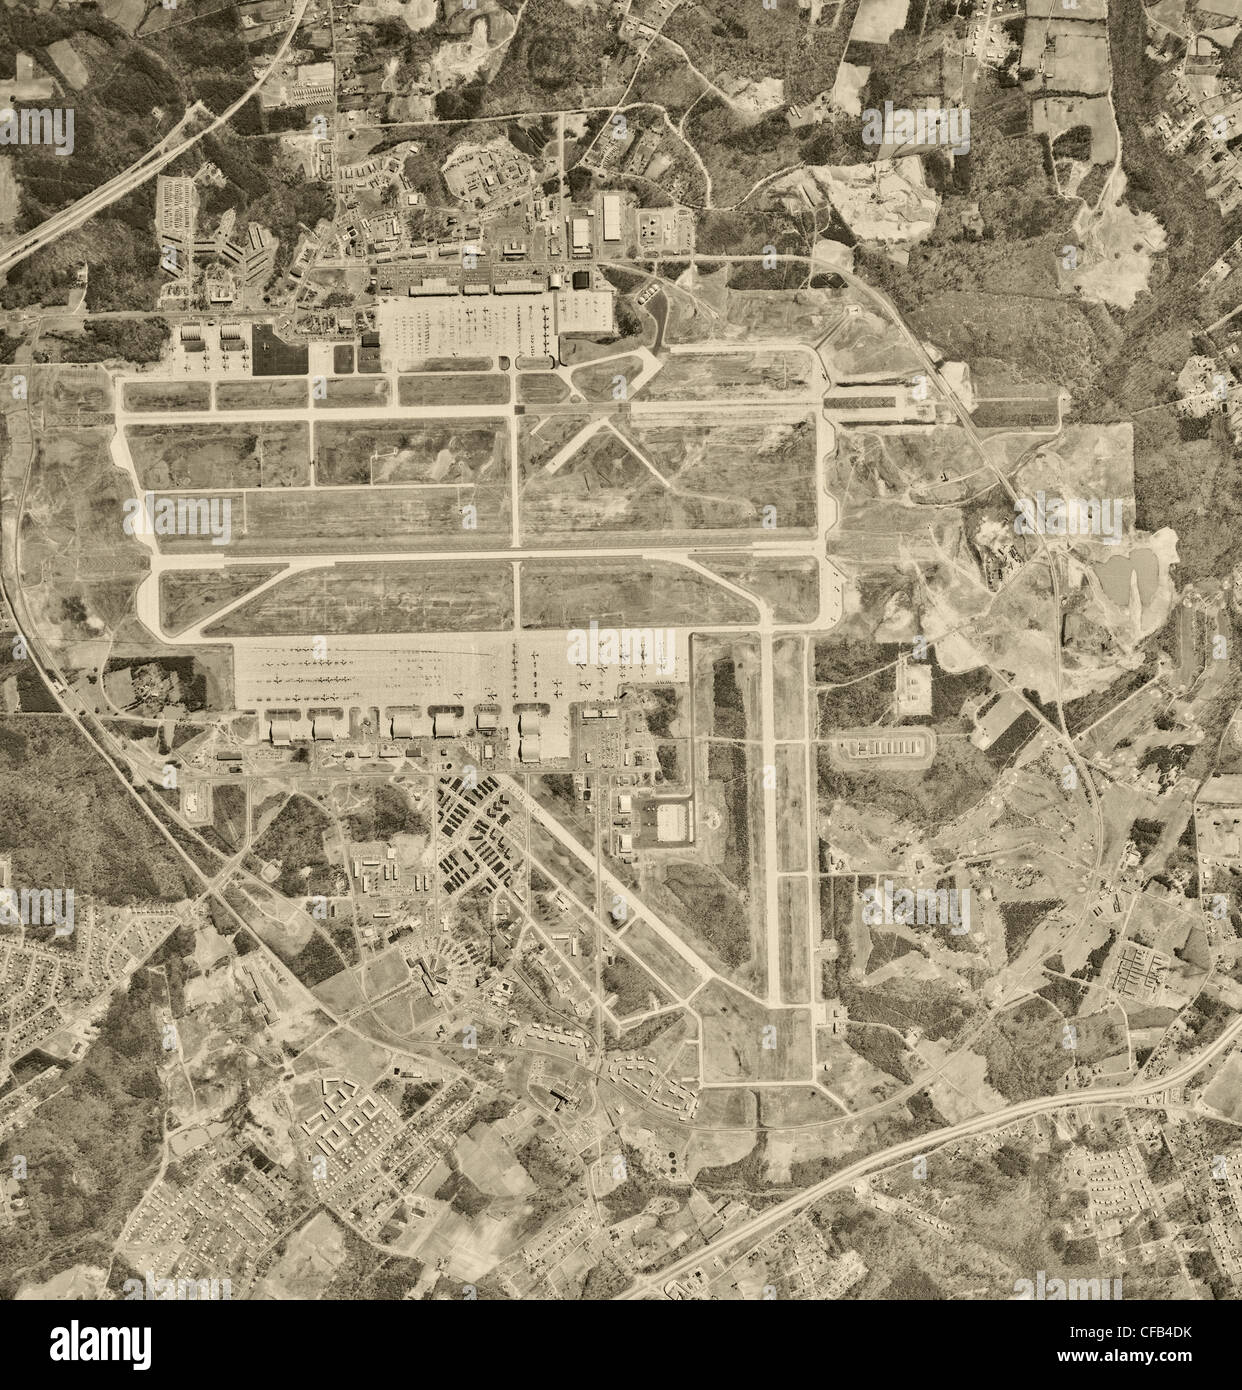 aerial photo map of Andrews Air Force Base, Prince George's county, Maryland 1963 - Stock Image